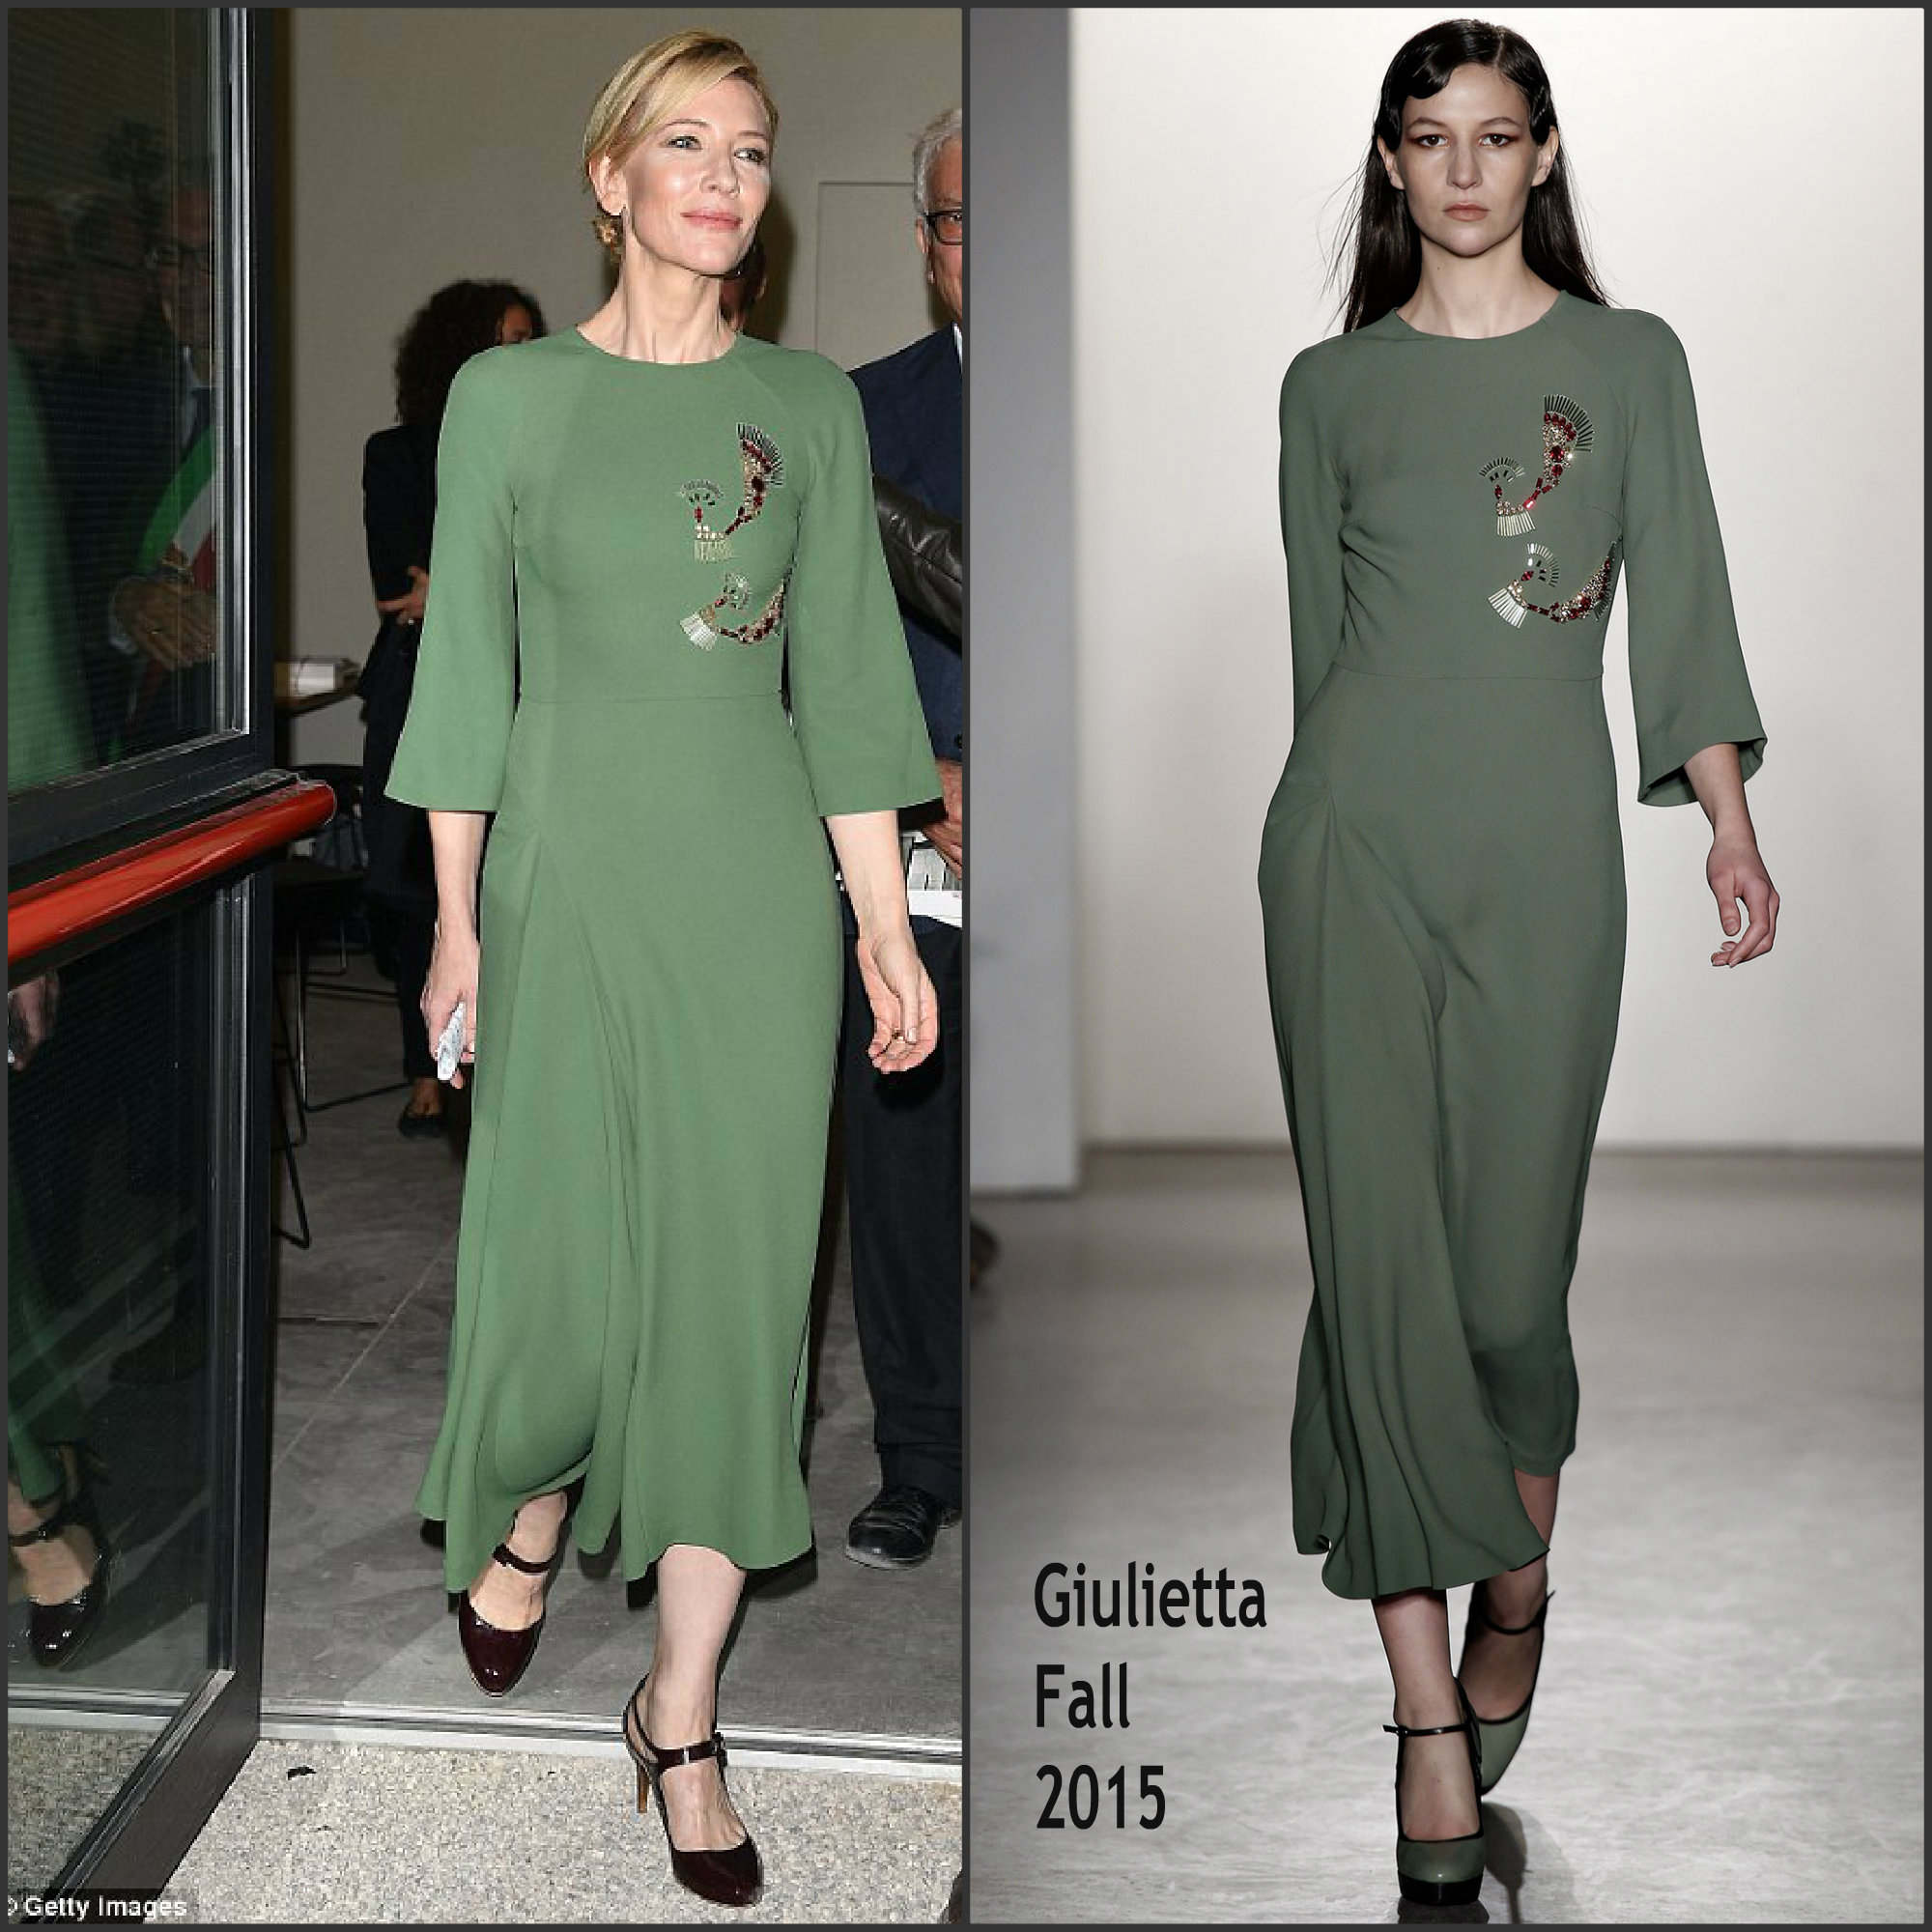 cate-blanchett-in-giulietta-at-the-opening-of-the-56th-international-art-biennale